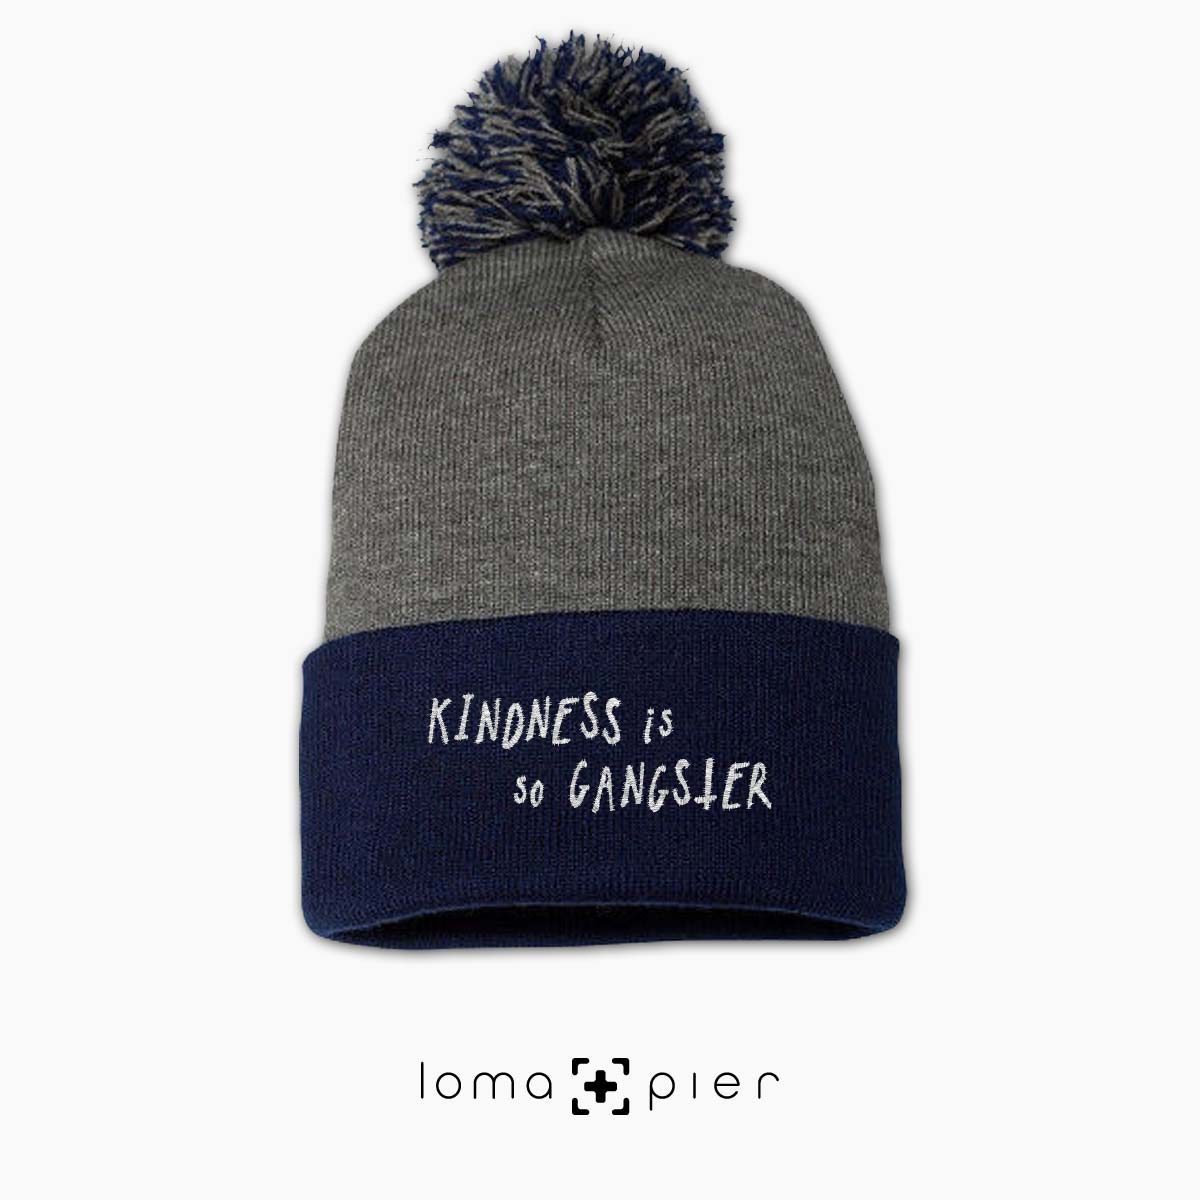 KINDNESS IS SO GANGSTER typography embroidered on a heather grey and navy blue pom pom beanie with white thread by loma+pier hat store